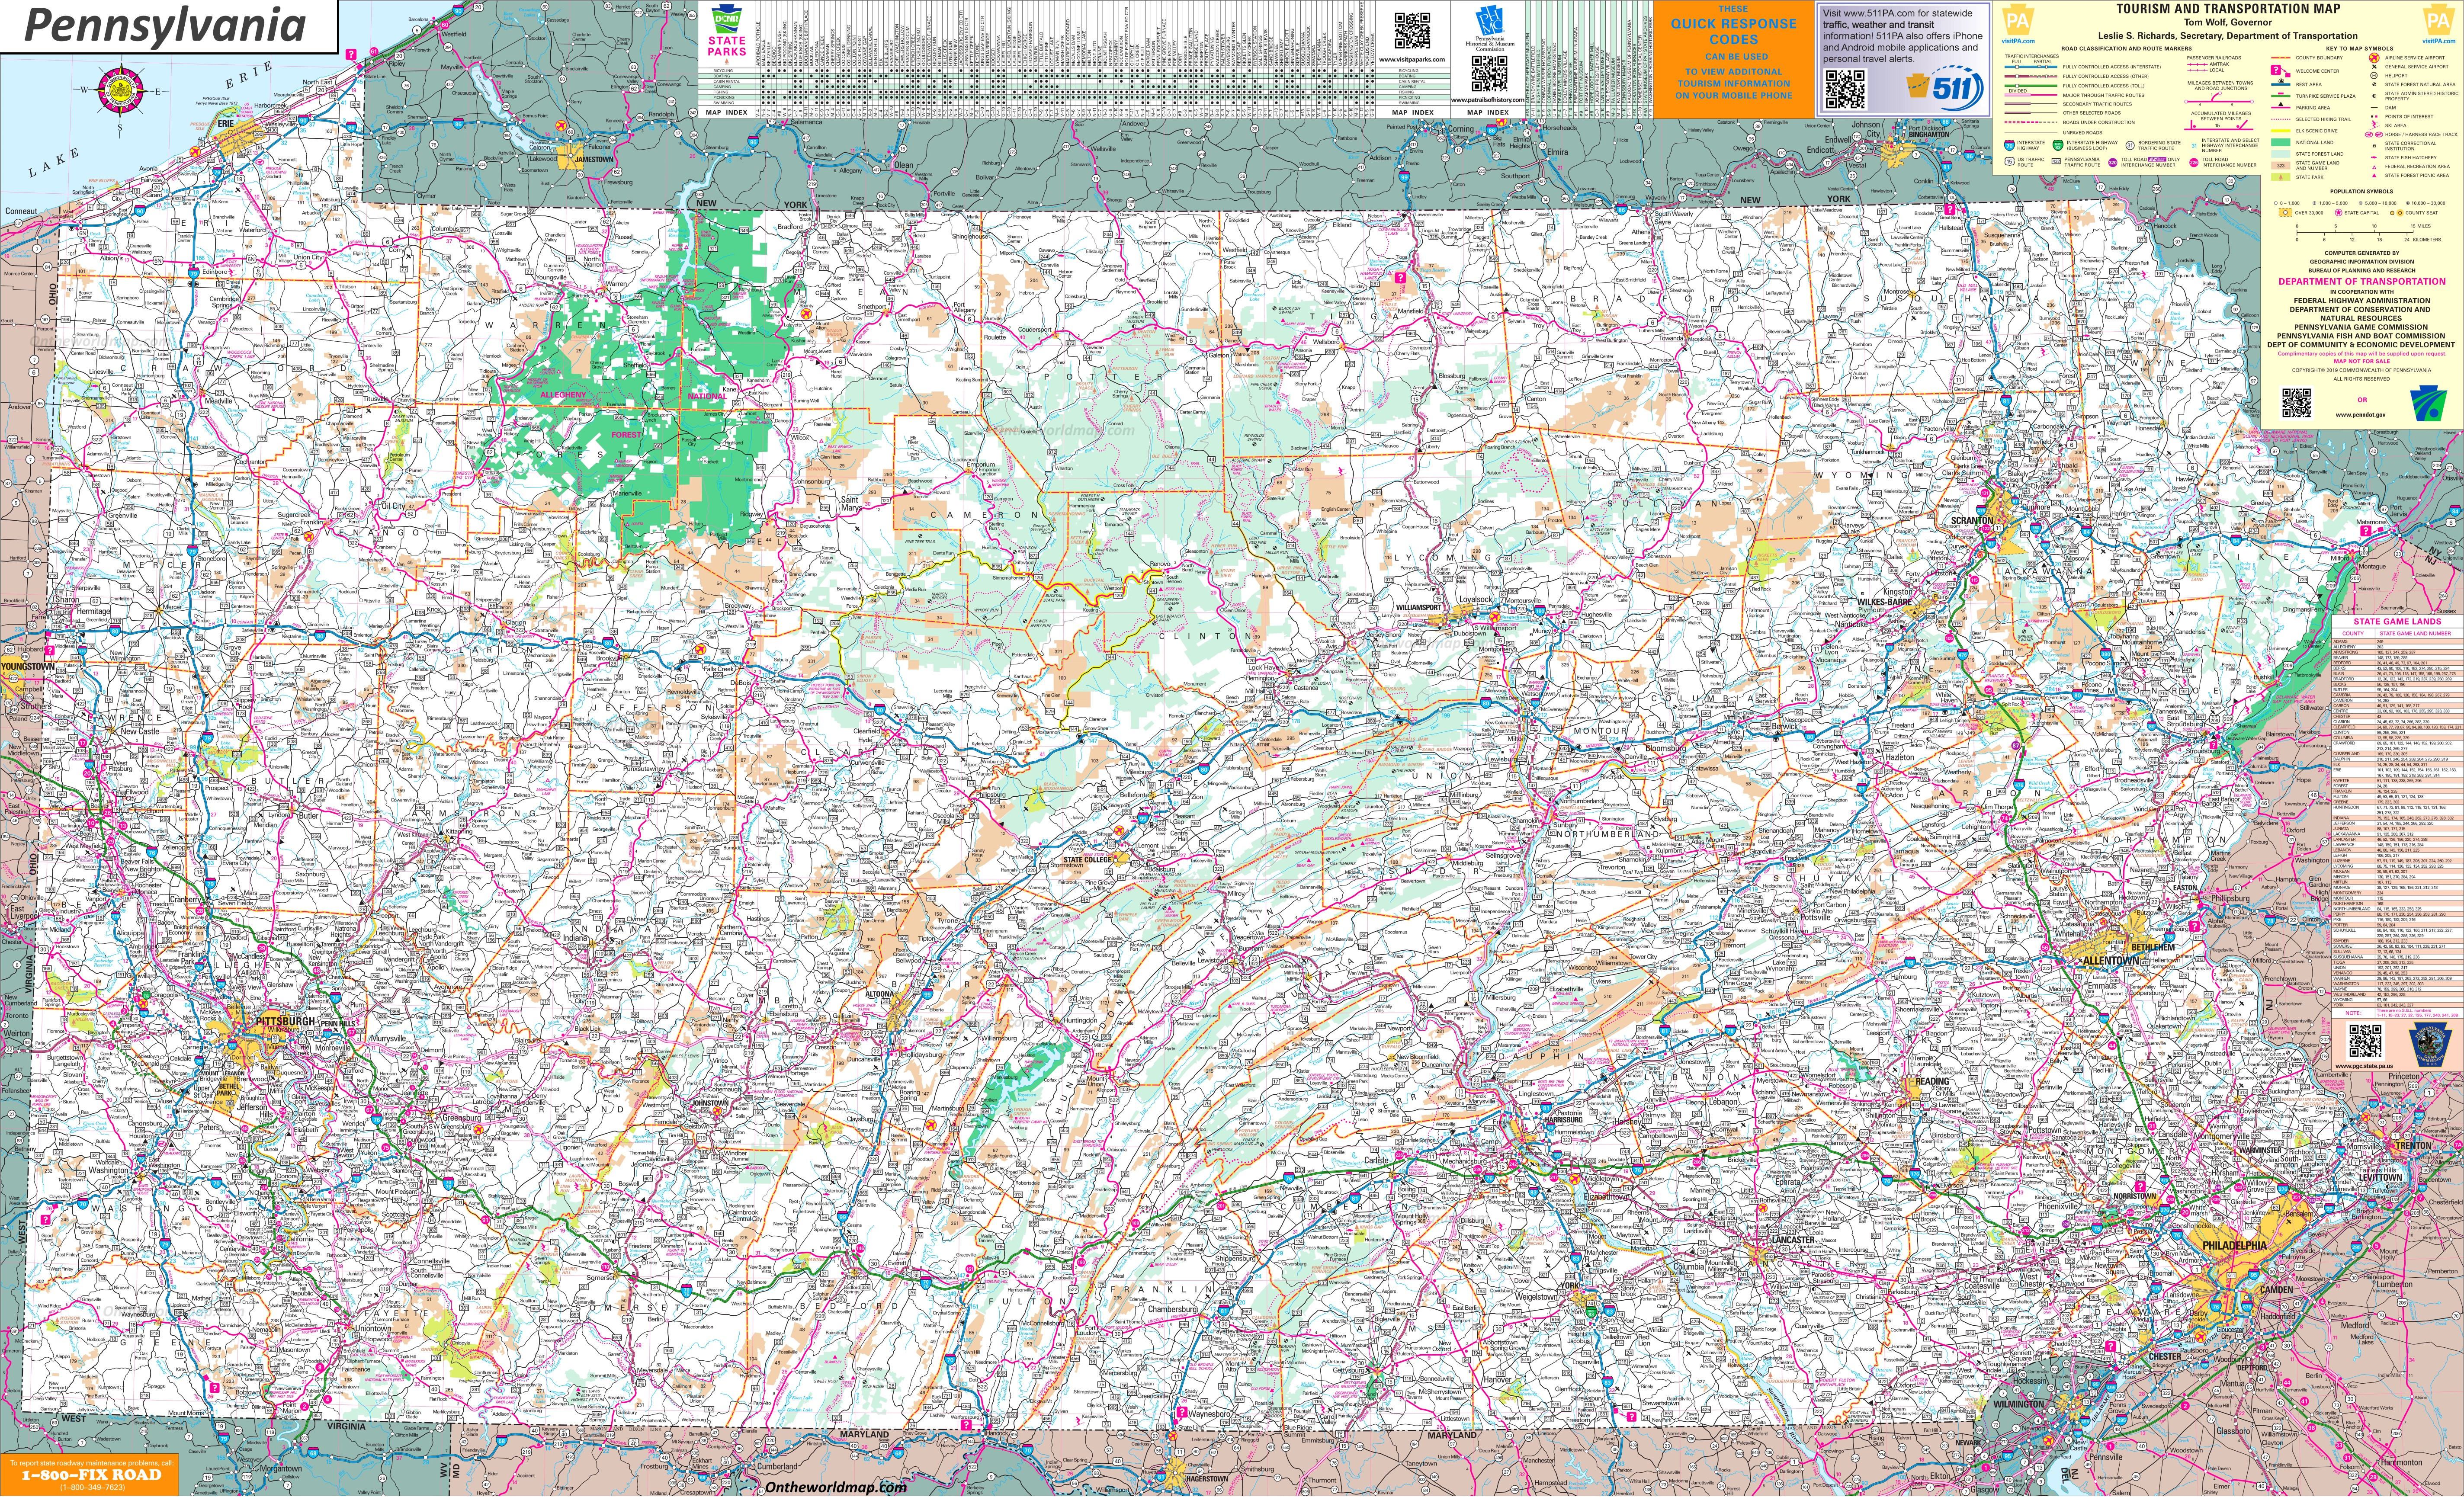 Pennsylvania Map With Cities And Towns Large detailed tourist map of Pennsylvania with cities and towns Pennsylvania Map With Cities And Towns